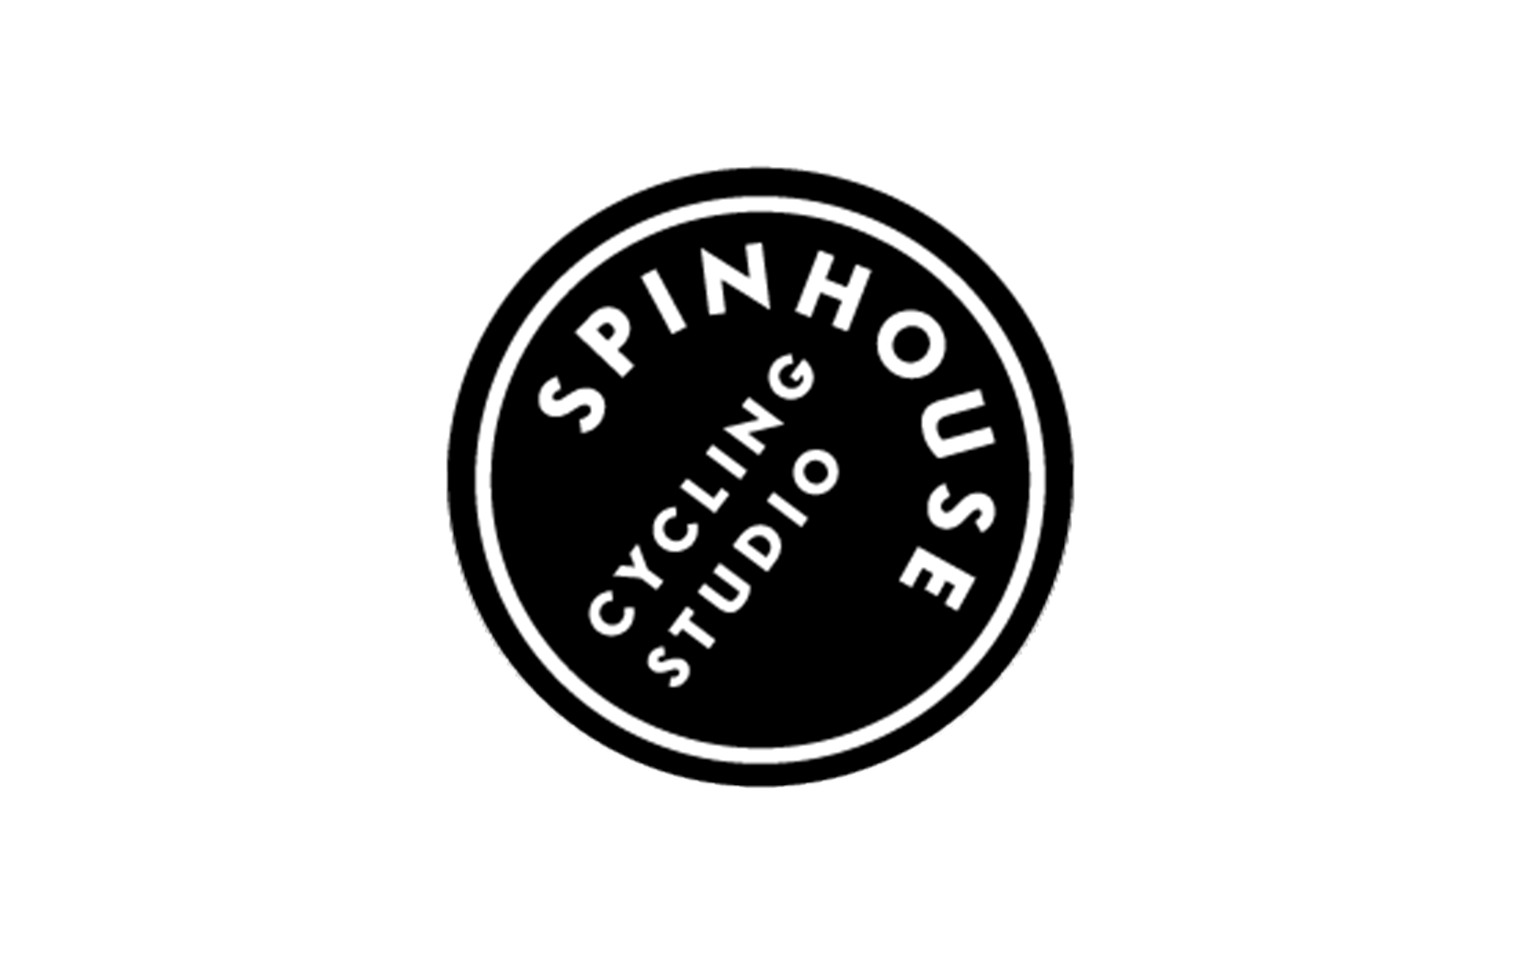 SpinHouse Cycling Studio – Let's do this!